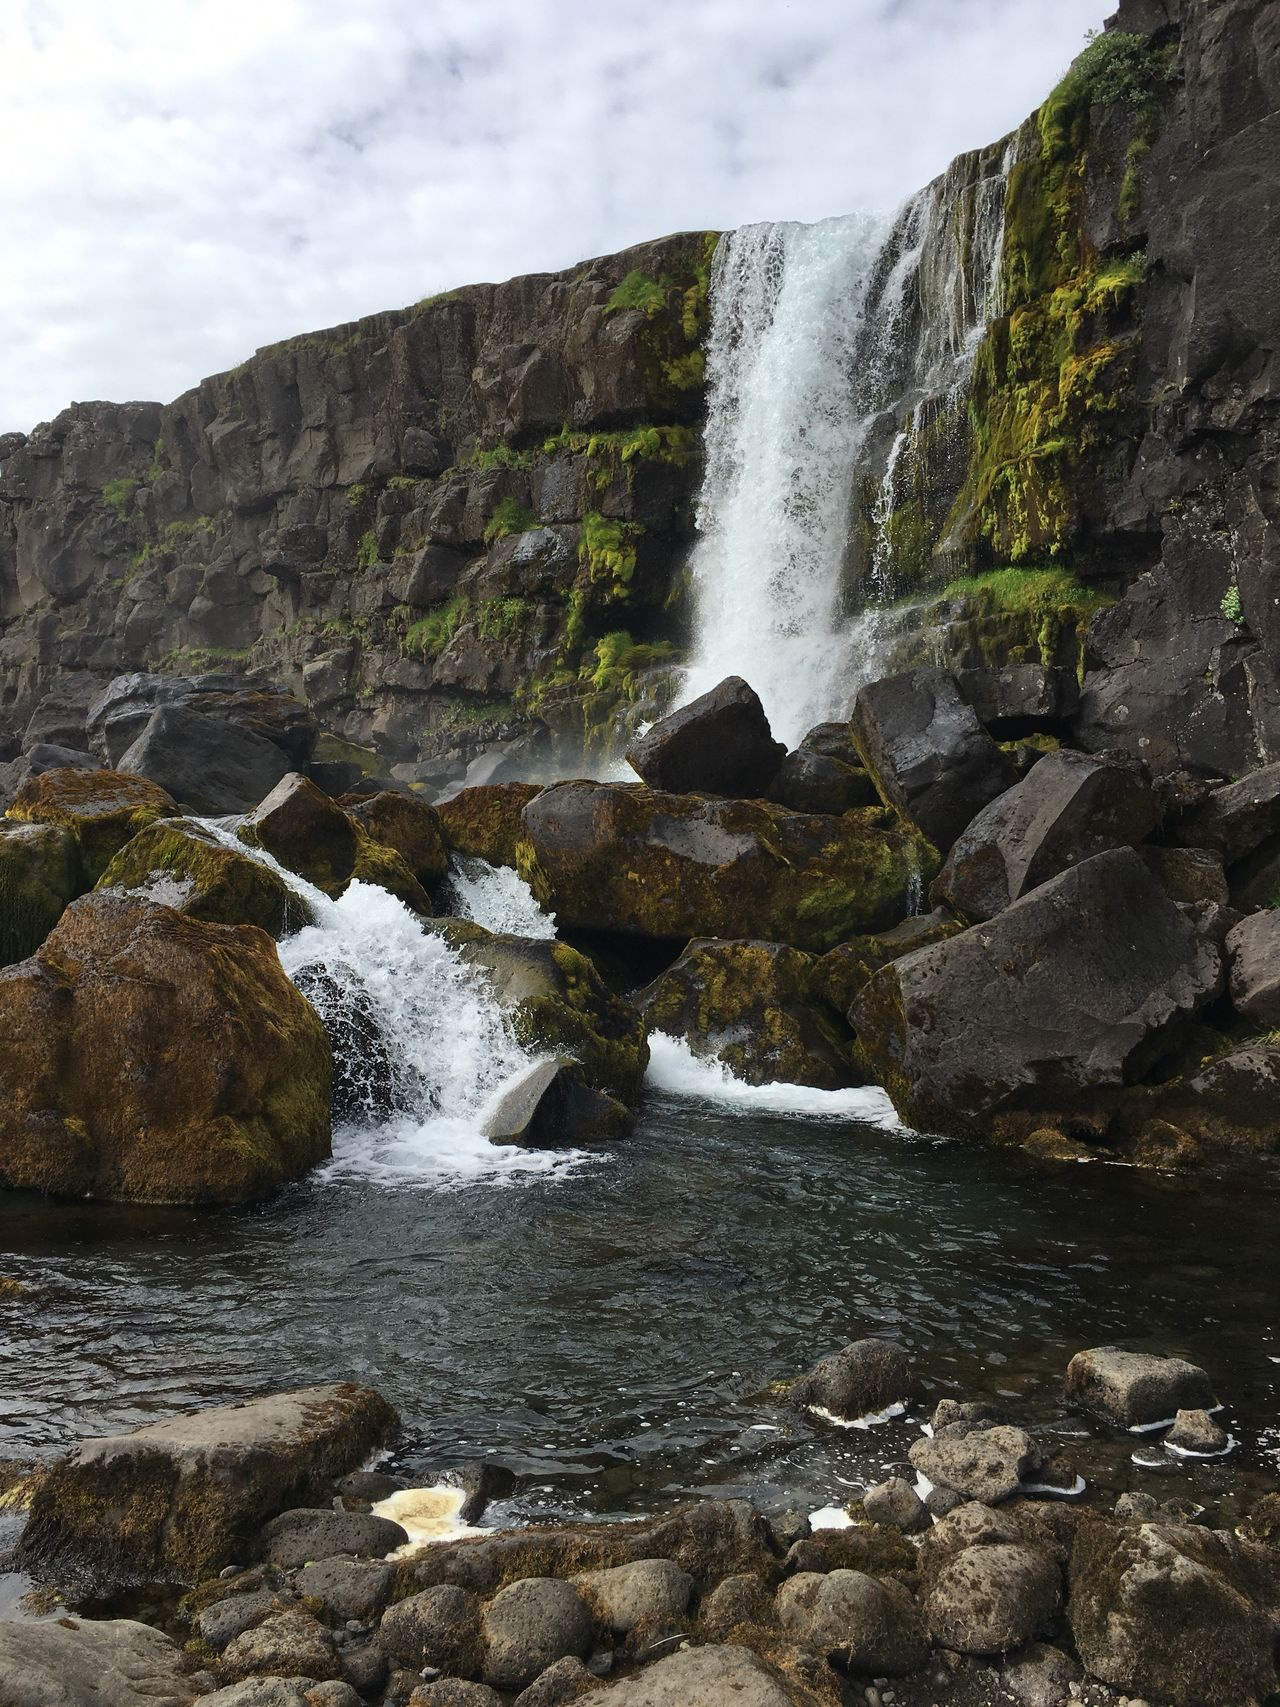 Scenics Low Angle View Beauty In Nature Outdoors Rock - Object Thingvellir National Park Thingvellir Waterfall Water Rocks Rocks And Water Nature Iceland Icelandic Nature